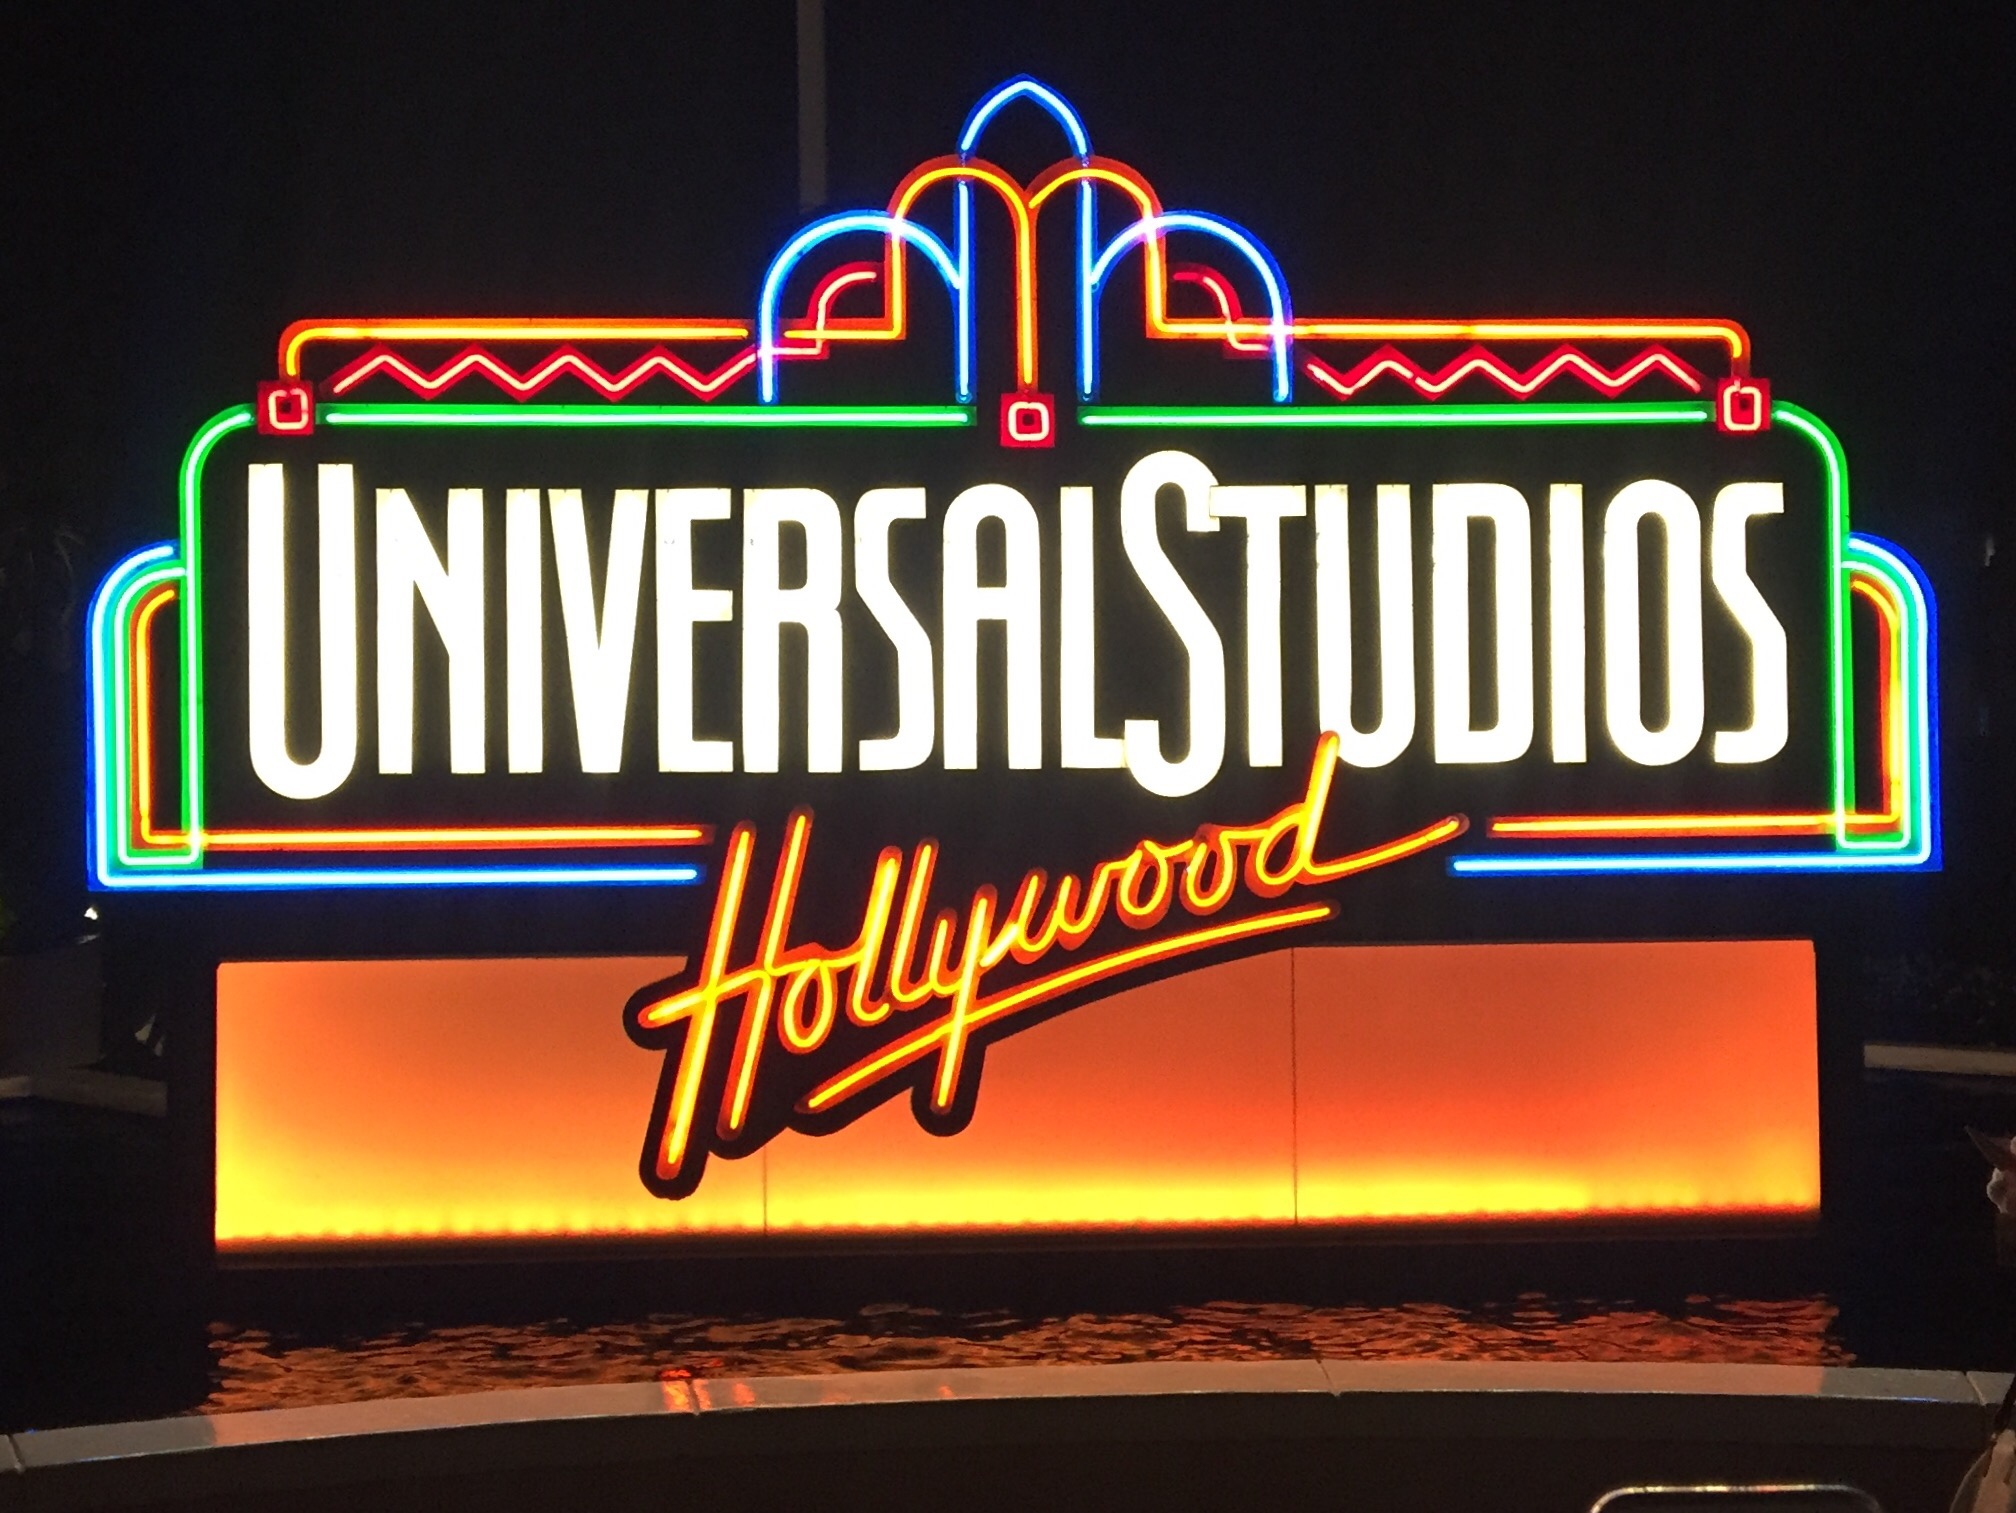 TheMouse sur YouTube: TheMouse au Farwest #3 Los Angeles Universal studios